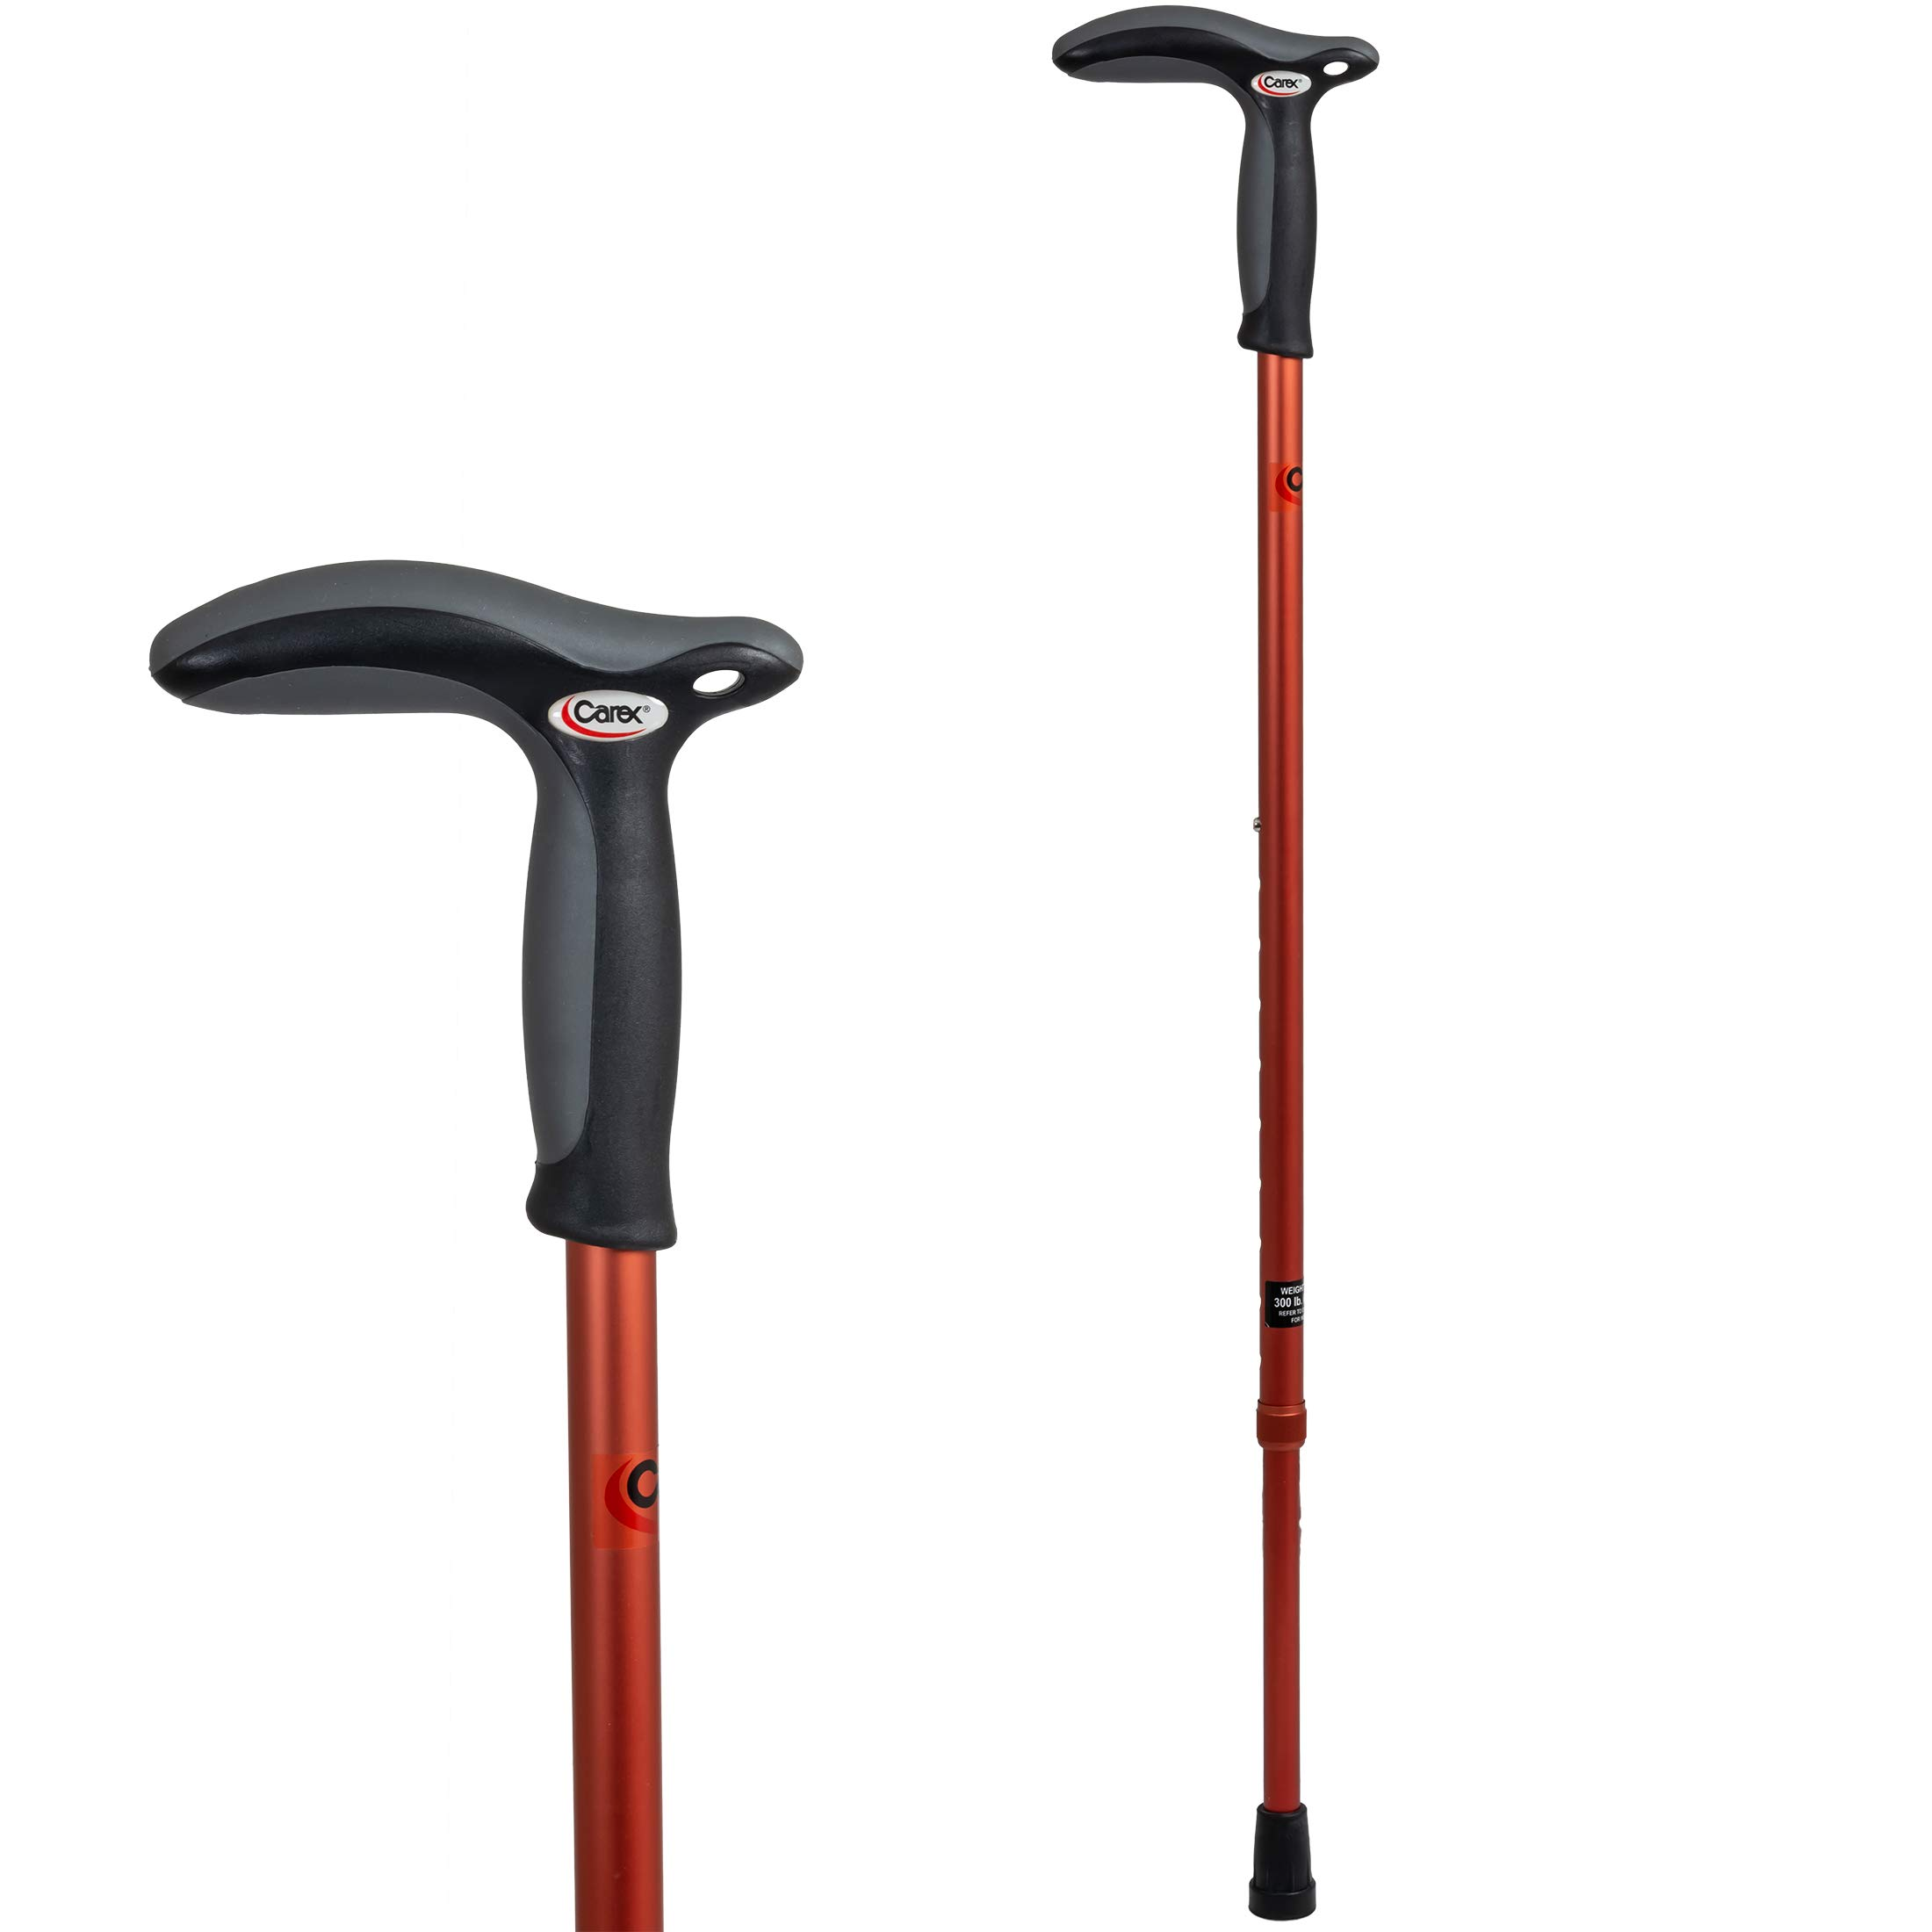 Carex Health Brands Hiking Cane Walking Stick with Dual Grip Handle for Men and Women, Red